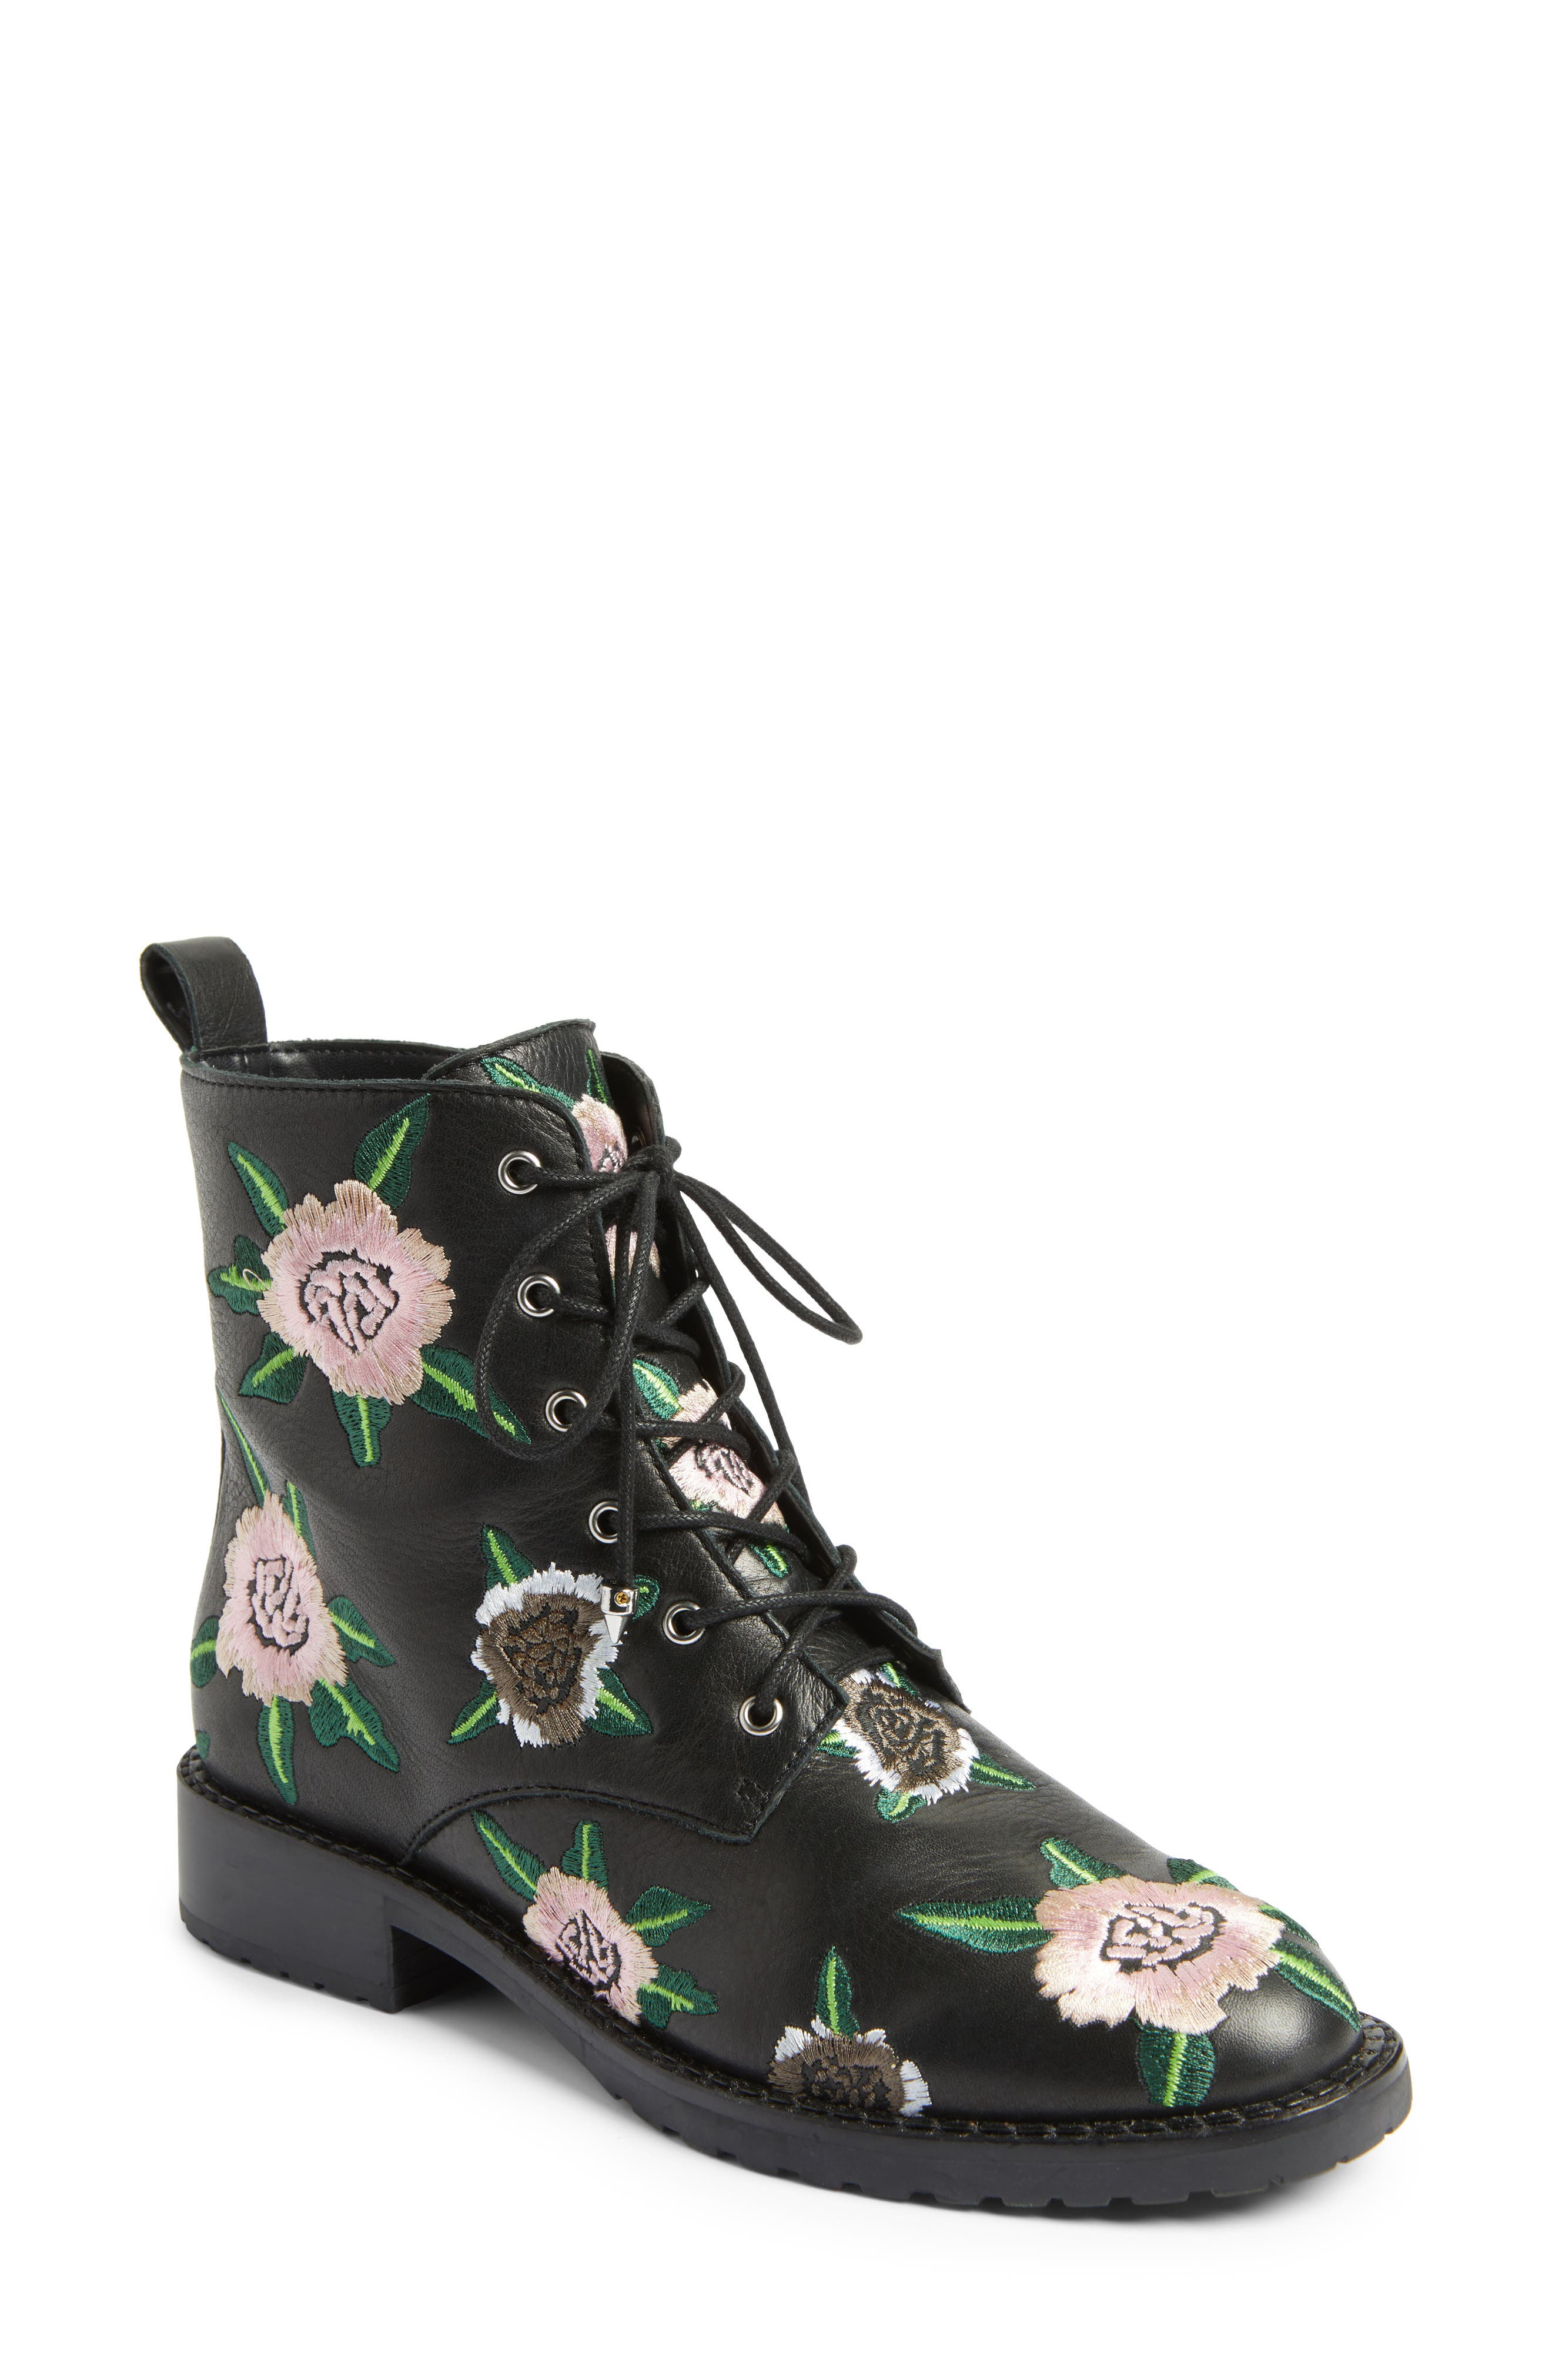 Gerry Embroidered Lace-Up Boot,                             Main thumbnail 1, color,                             001